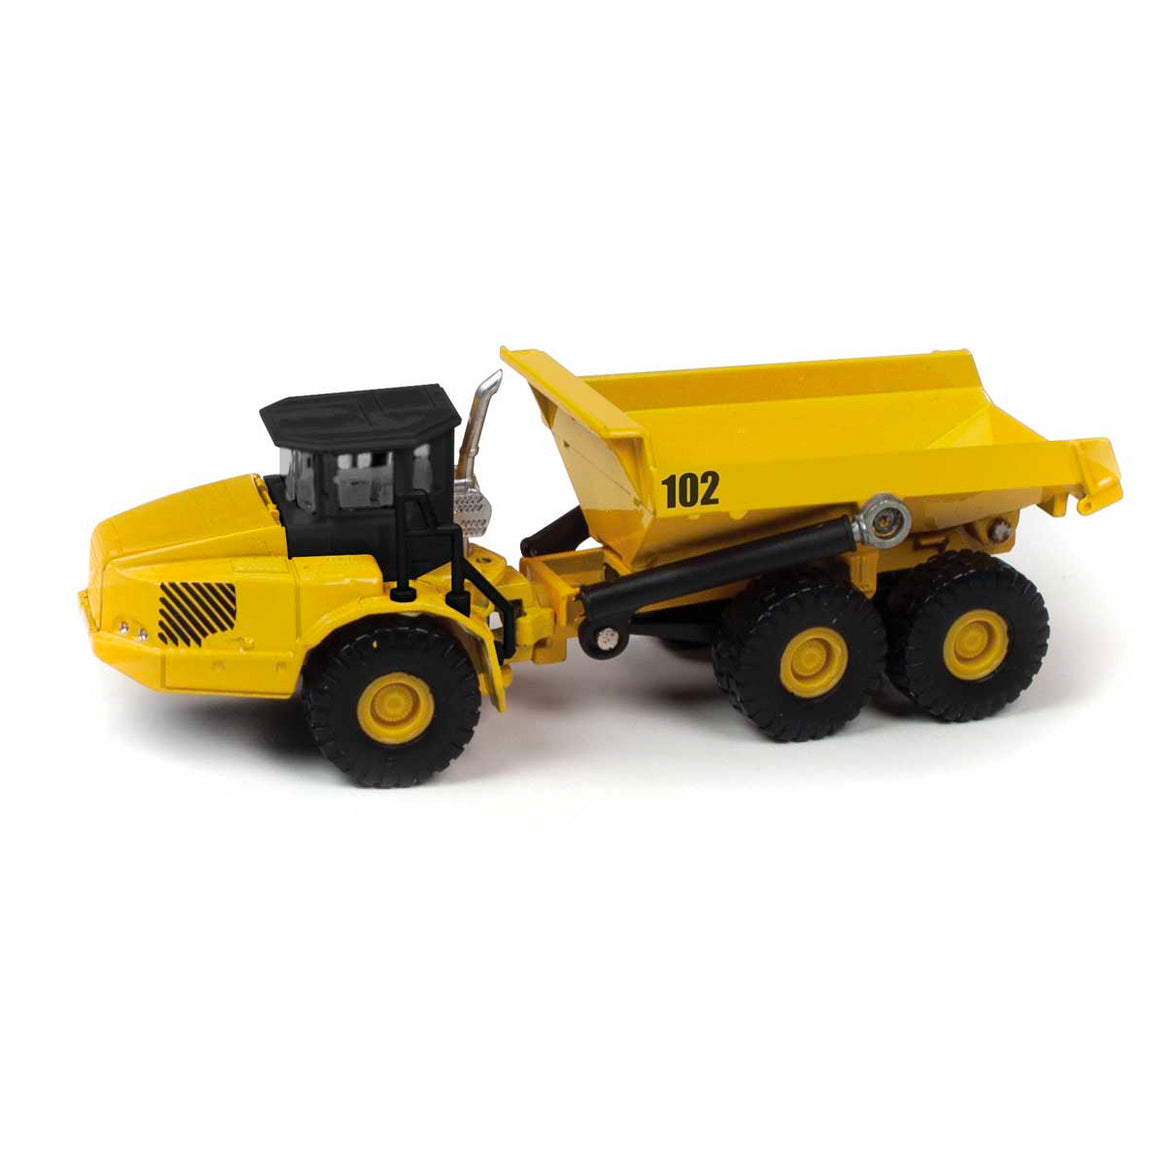 HO Scale: Heavy Earth Mover